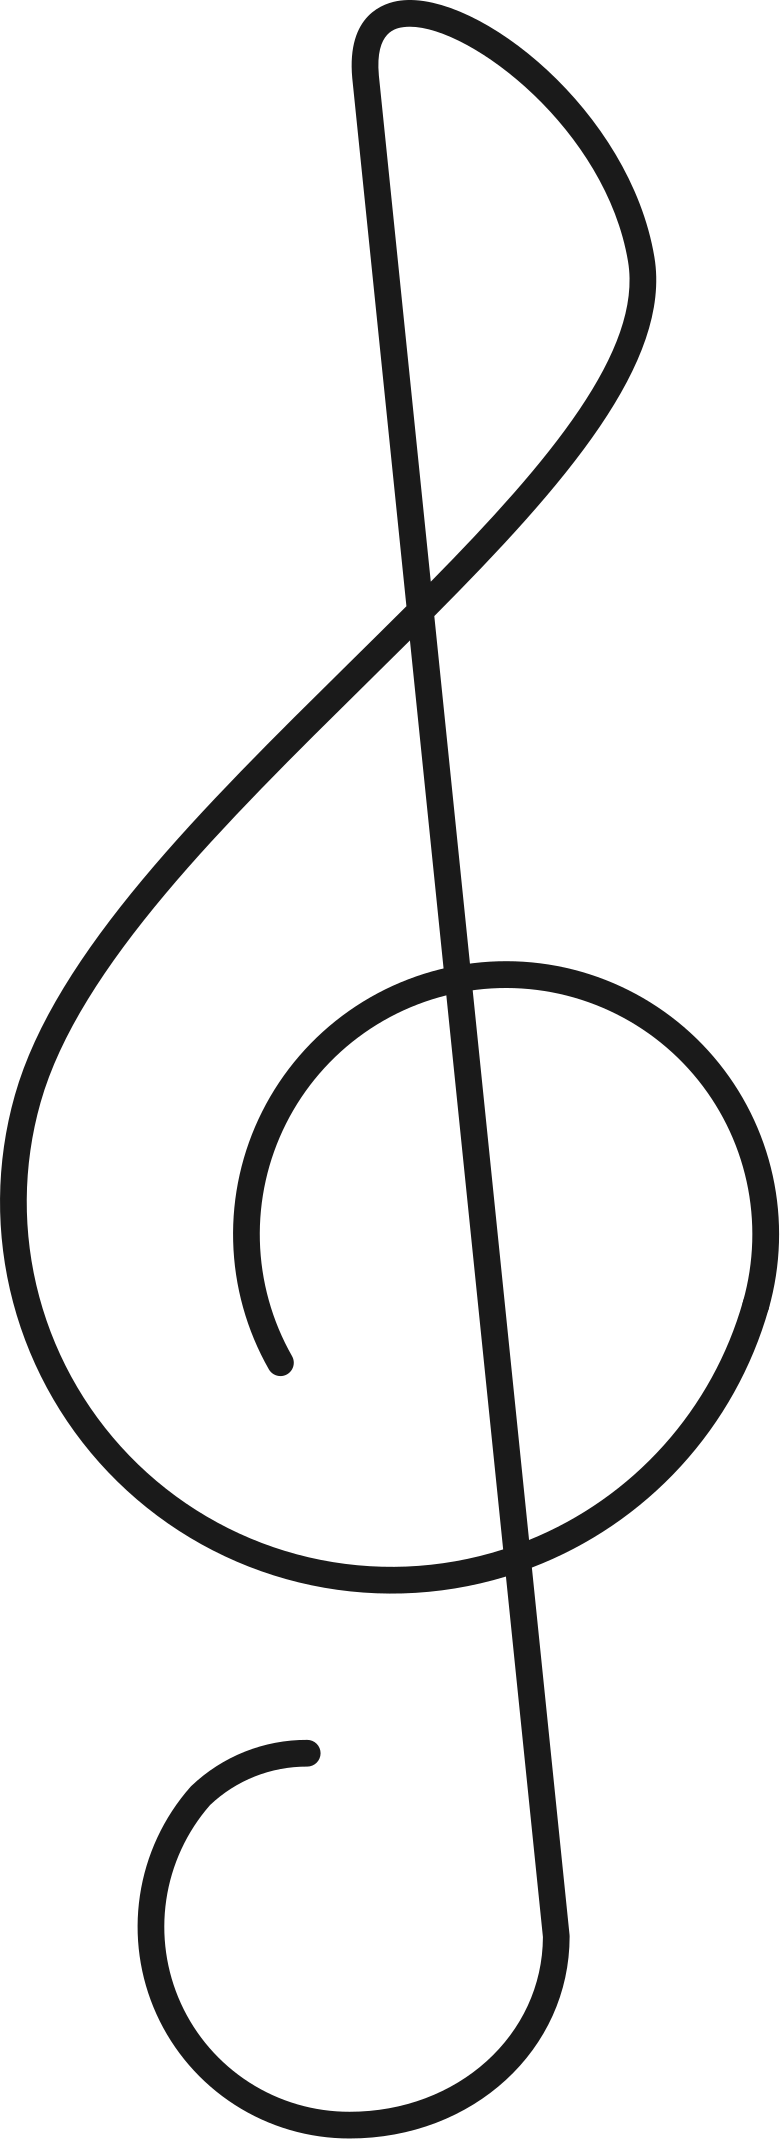 style treble clef Vector images in PNG and SVG | Icons8 Illustrations